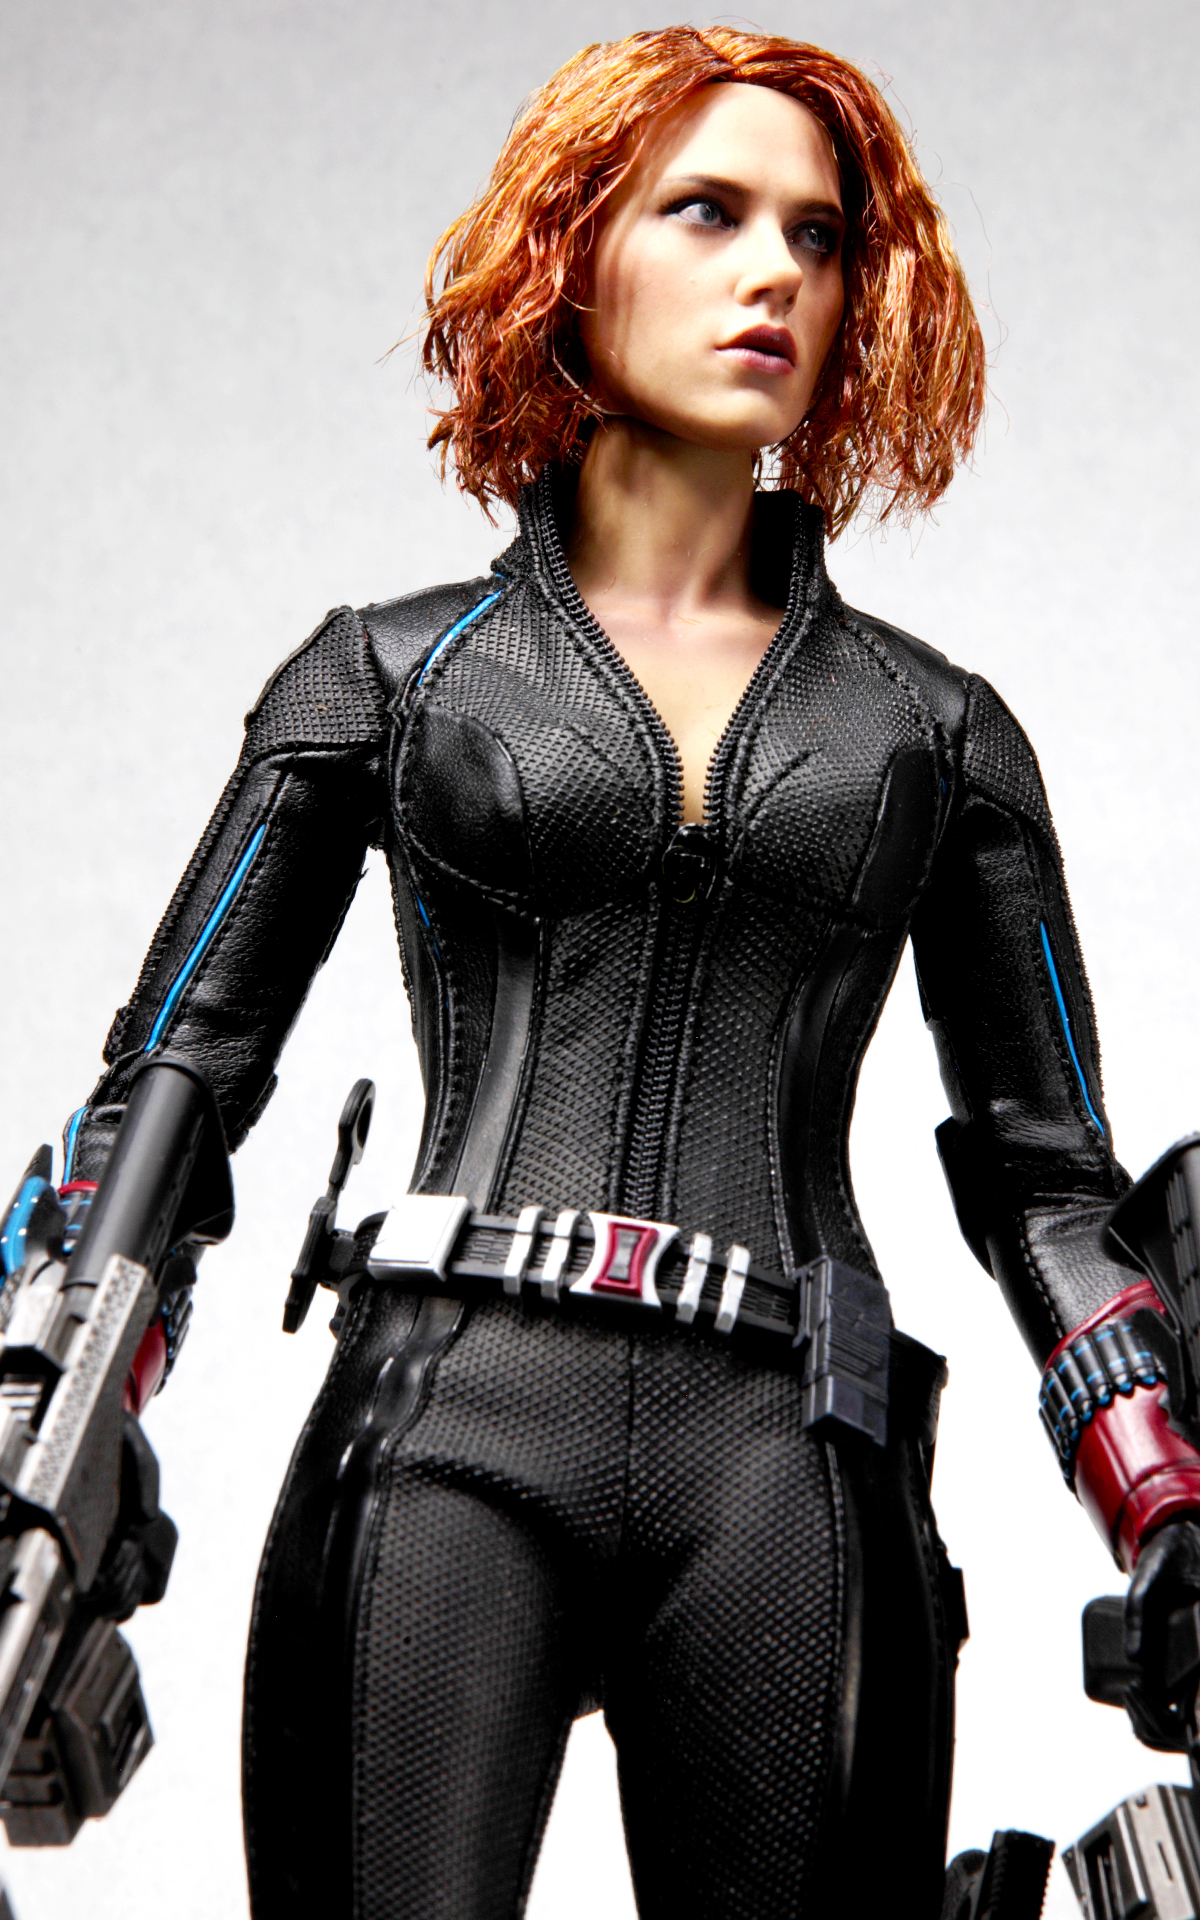 hottoys-avengers-age-of-ultron-black-widow-picture05